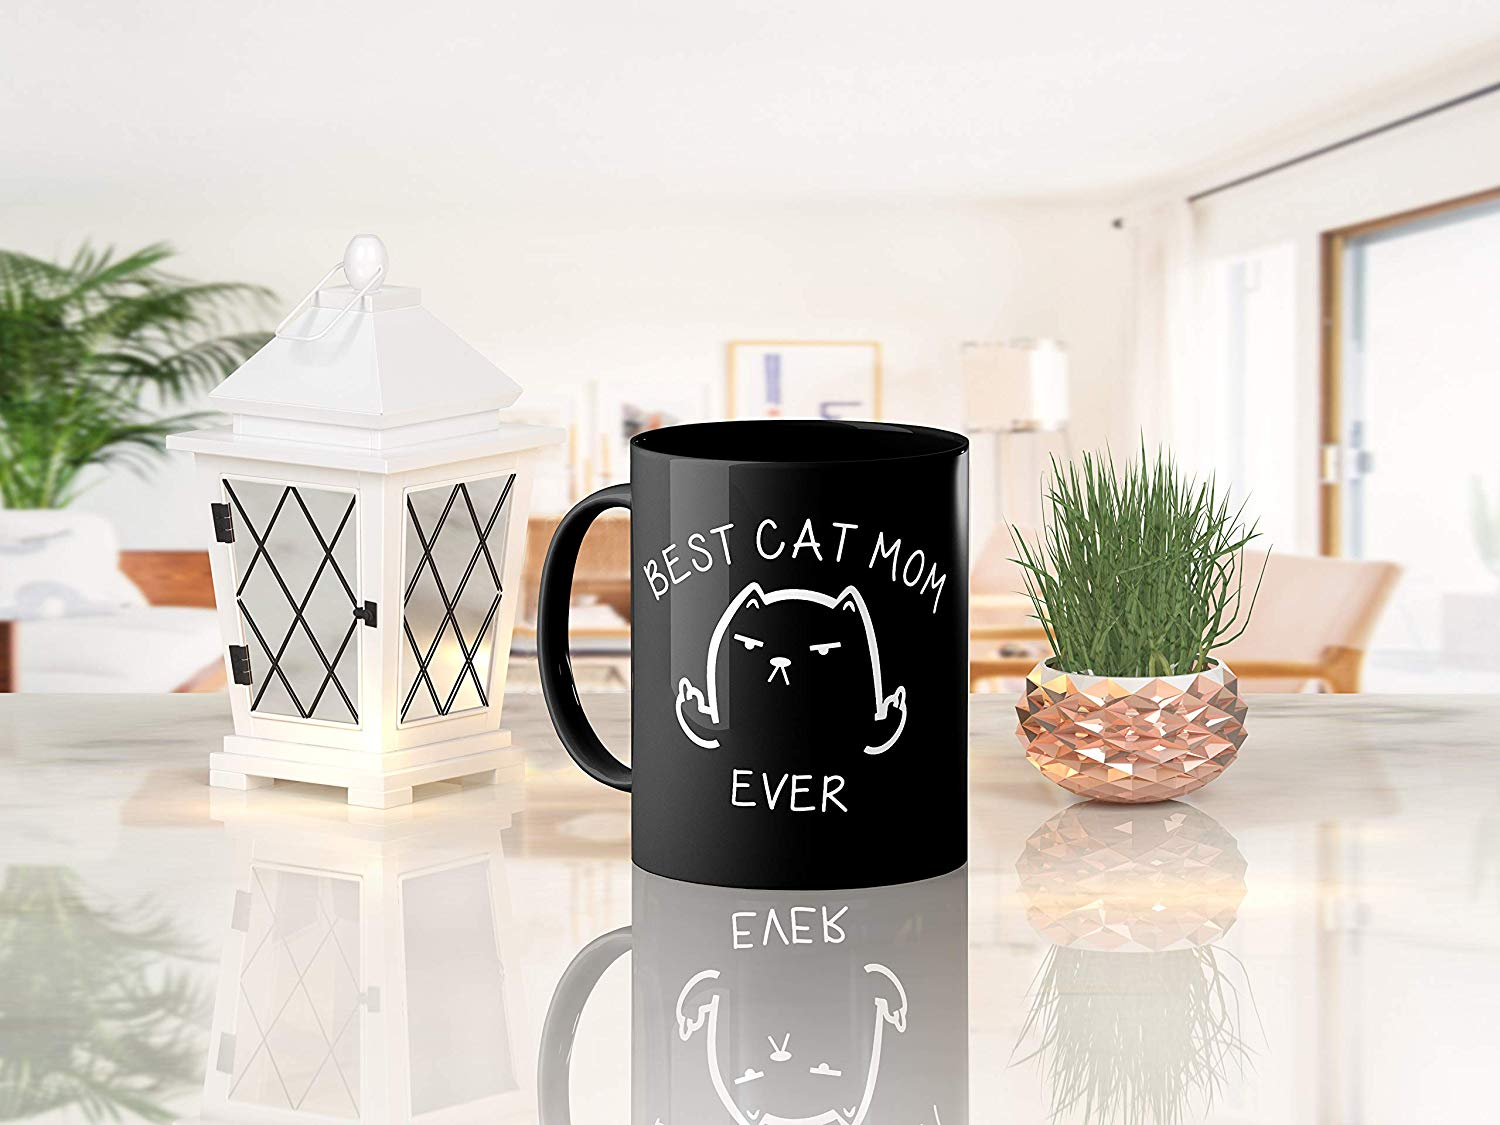 Best Cat Mom Ever Funny Coffee Mug Cat Middle Finger 11 Oz Birthday Gift For MotherMom Or Wife B079FYPL3B 8